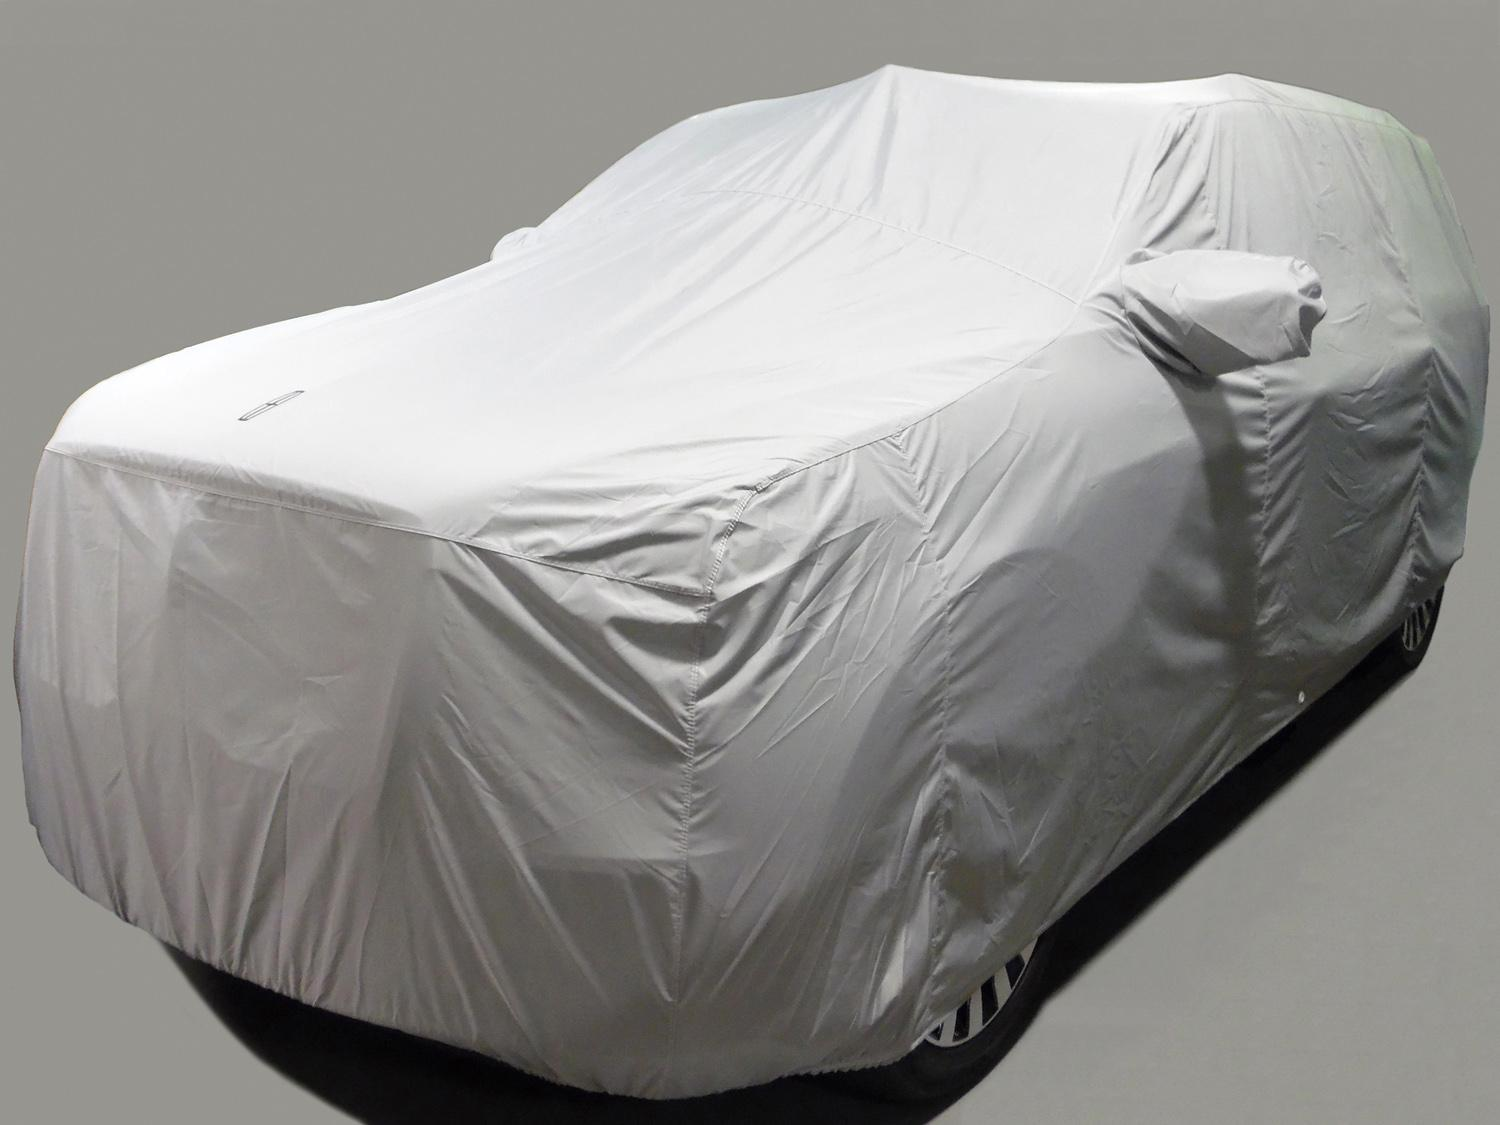 Full Vehicle Covers - Extended